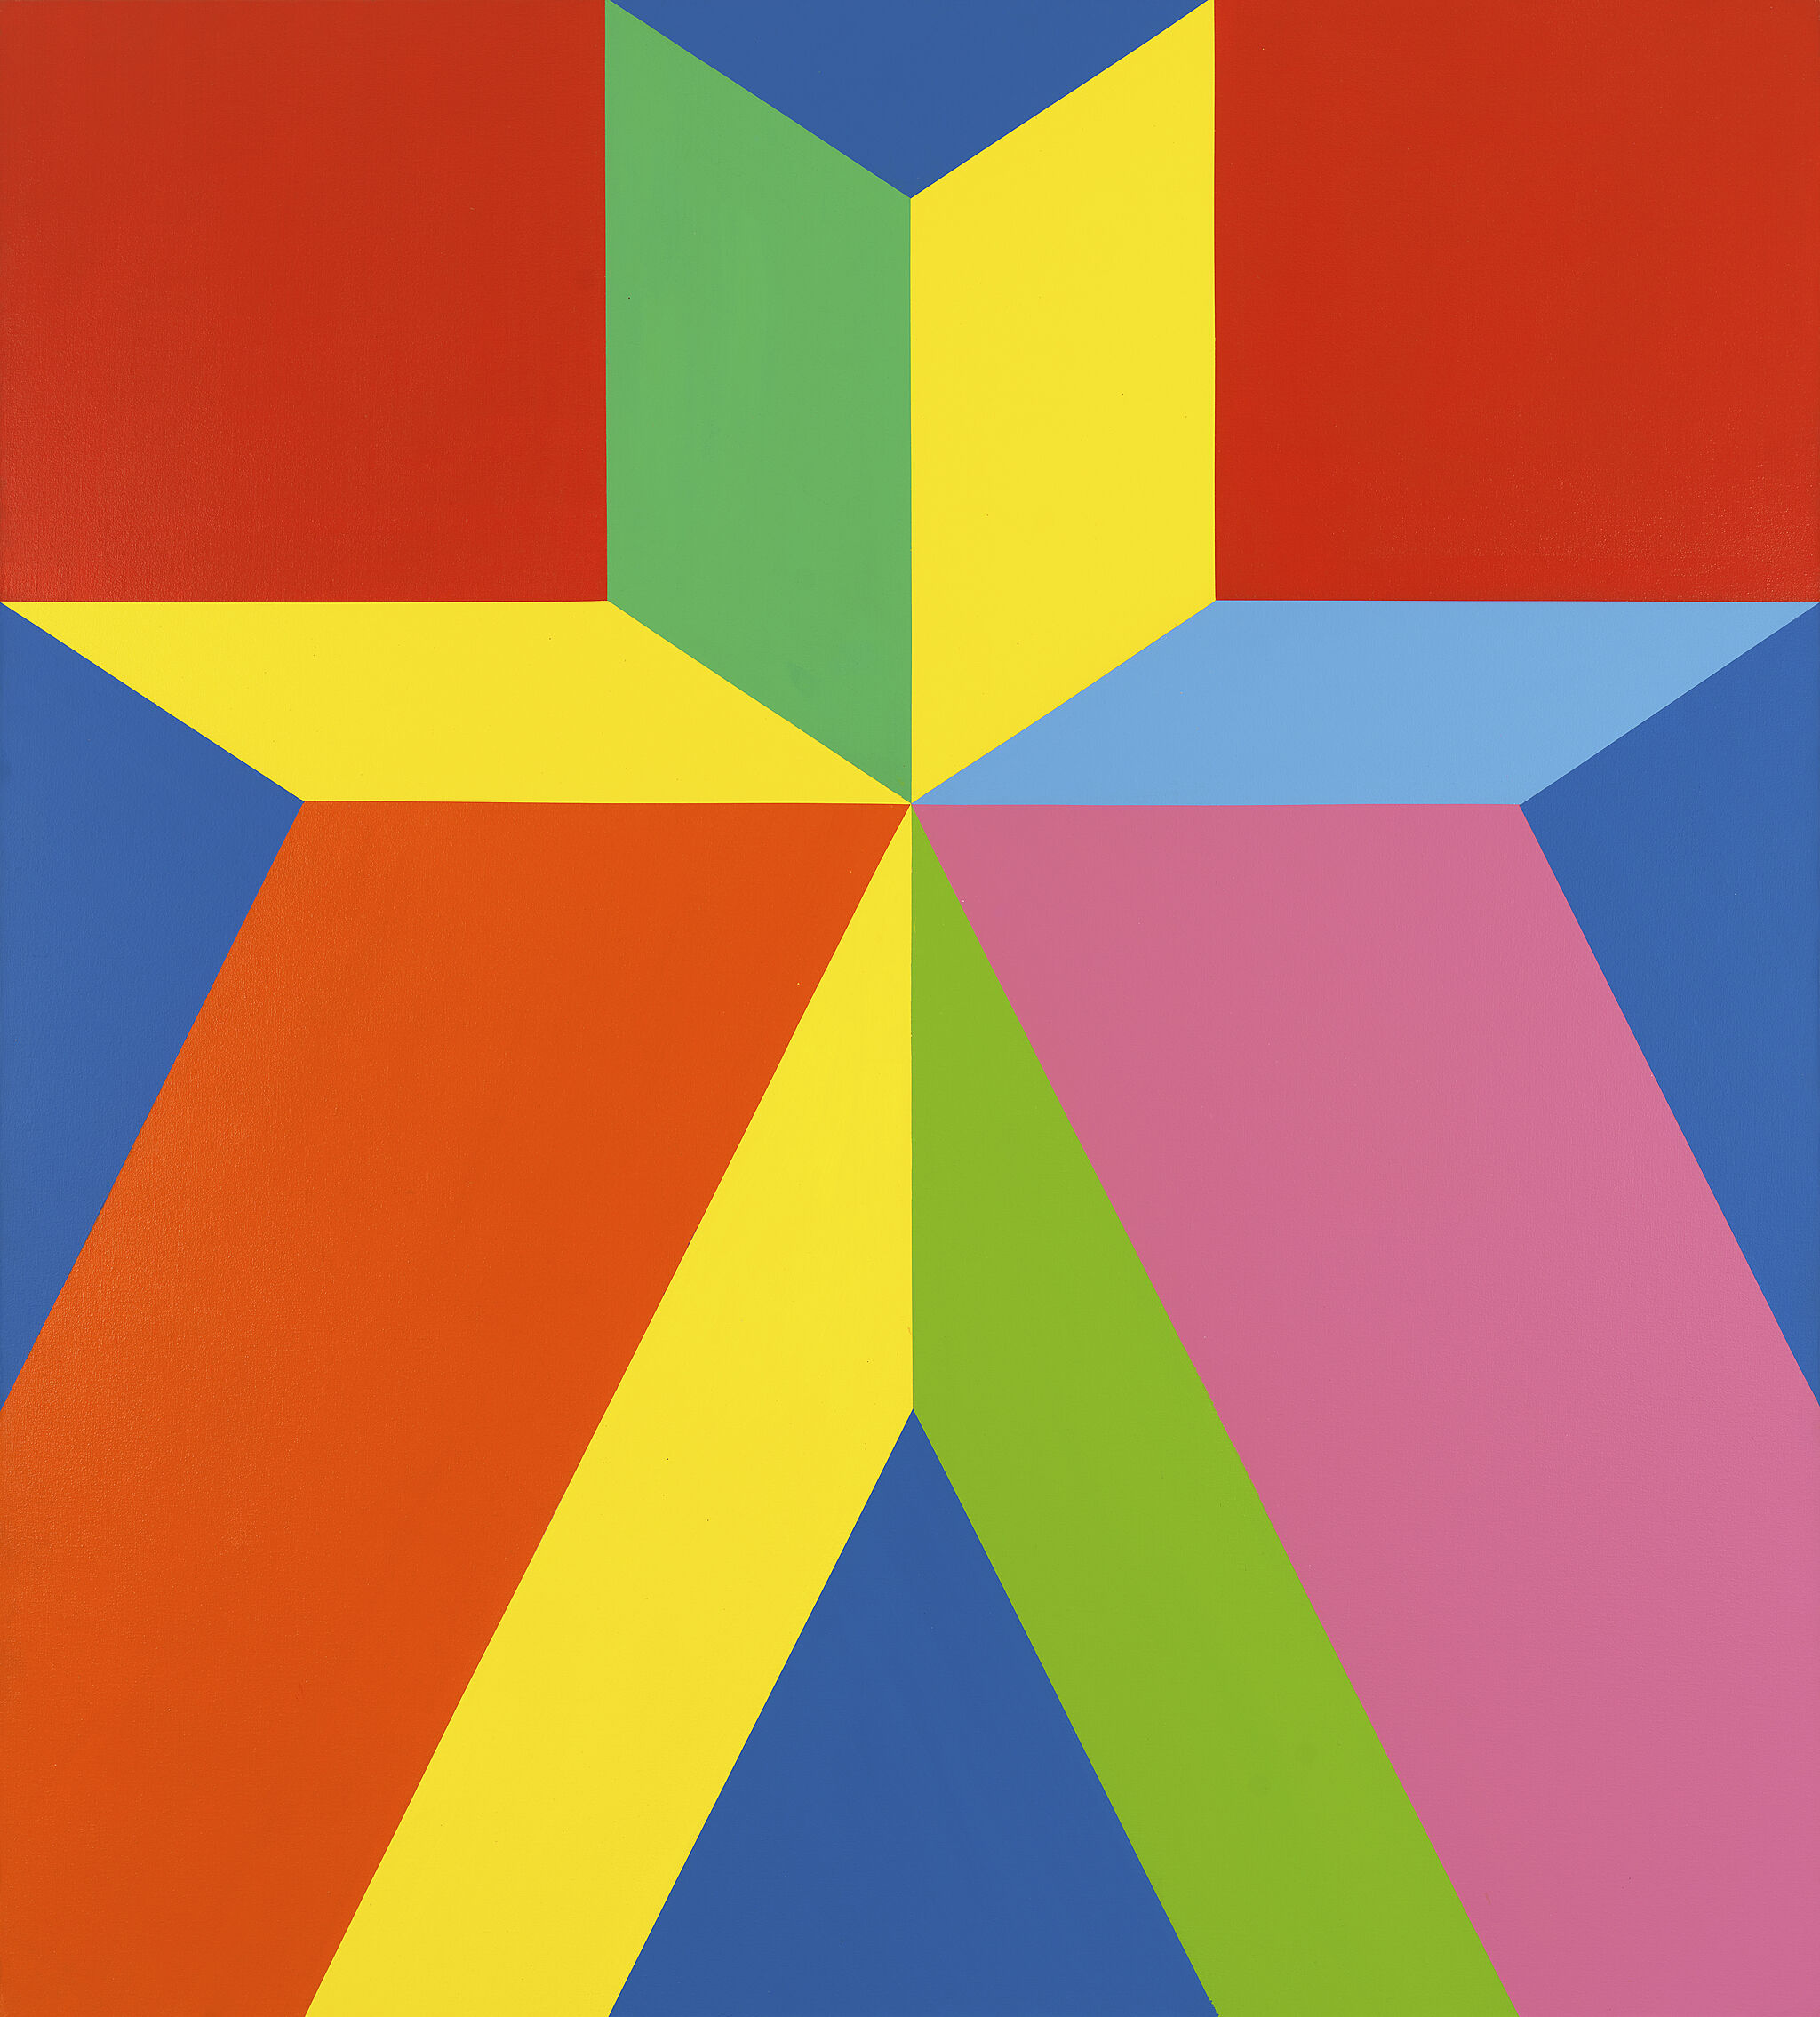 A painting featuring brightly colored shapes.